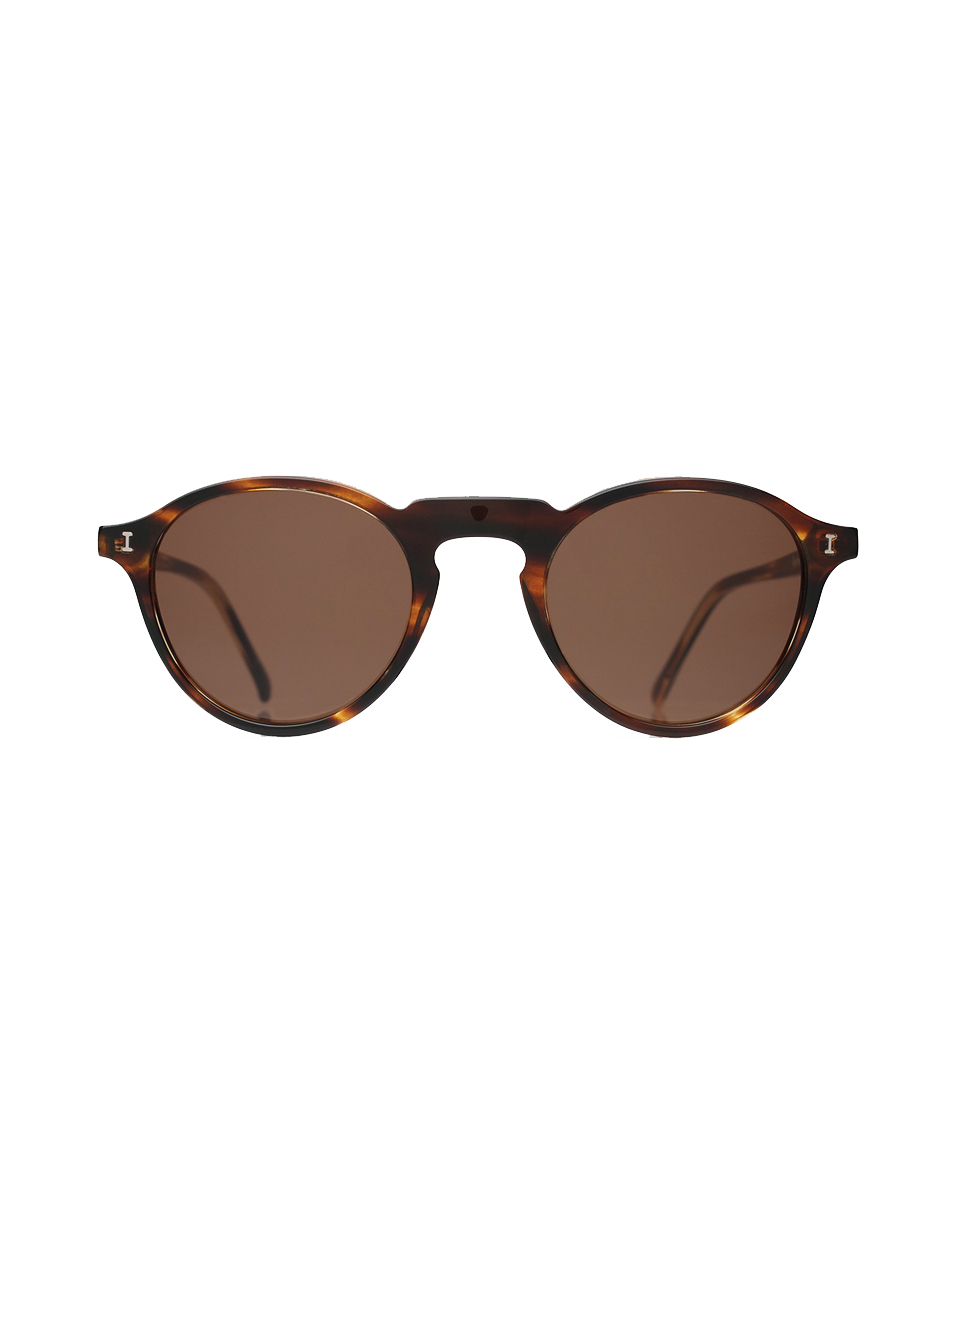 4bfc813e753 ... Accessories · Sunglasses  Capri Sunglasses. PrevNext